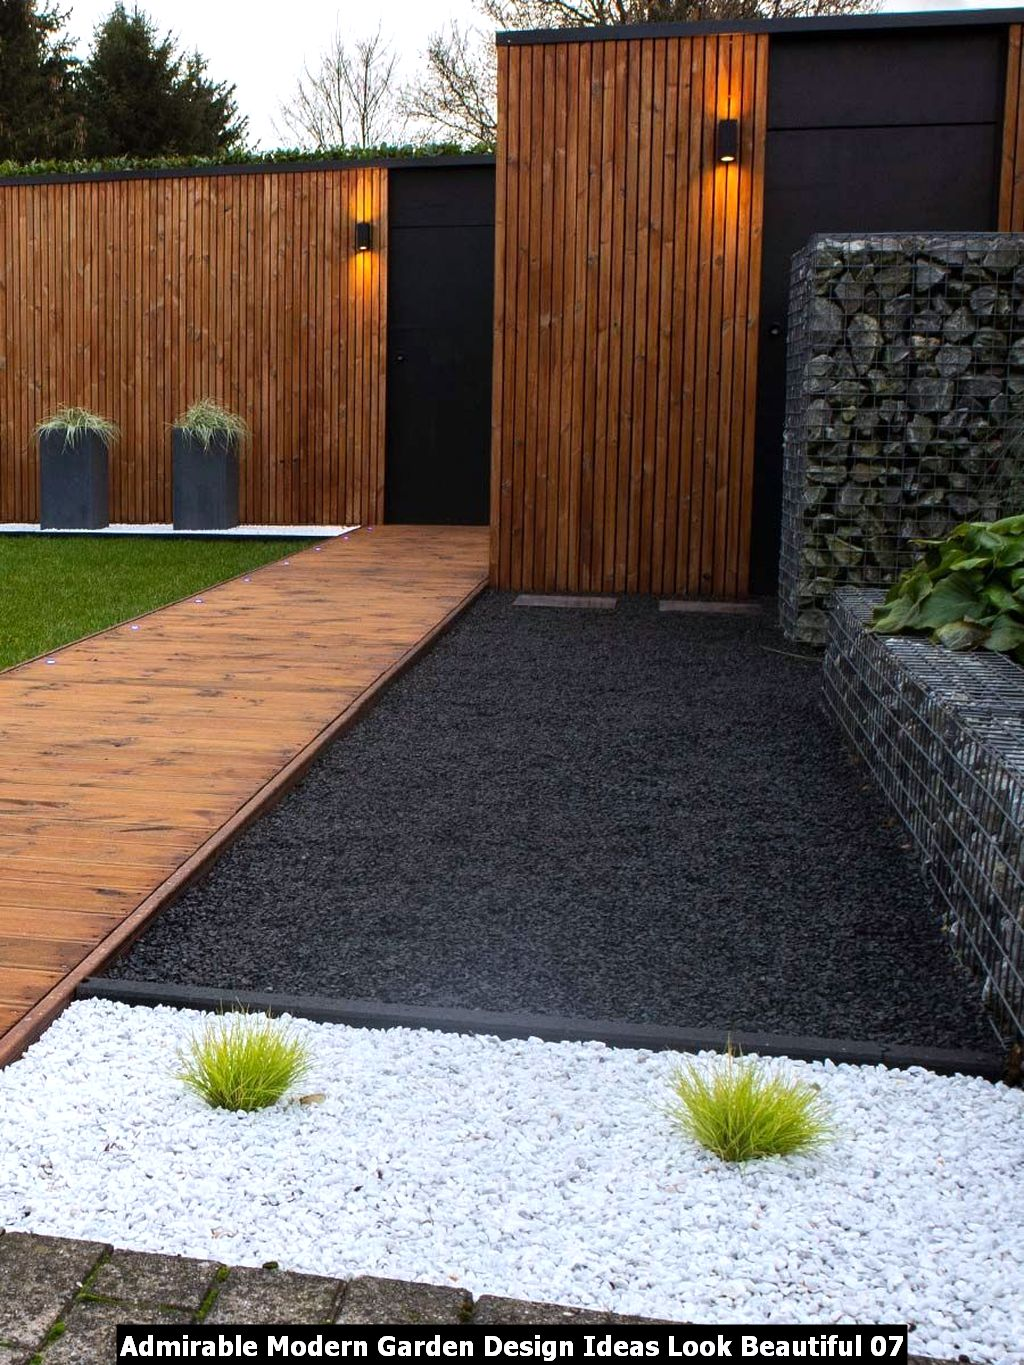 Admirable Modern Garden Design Ideas Look Beautiful 07